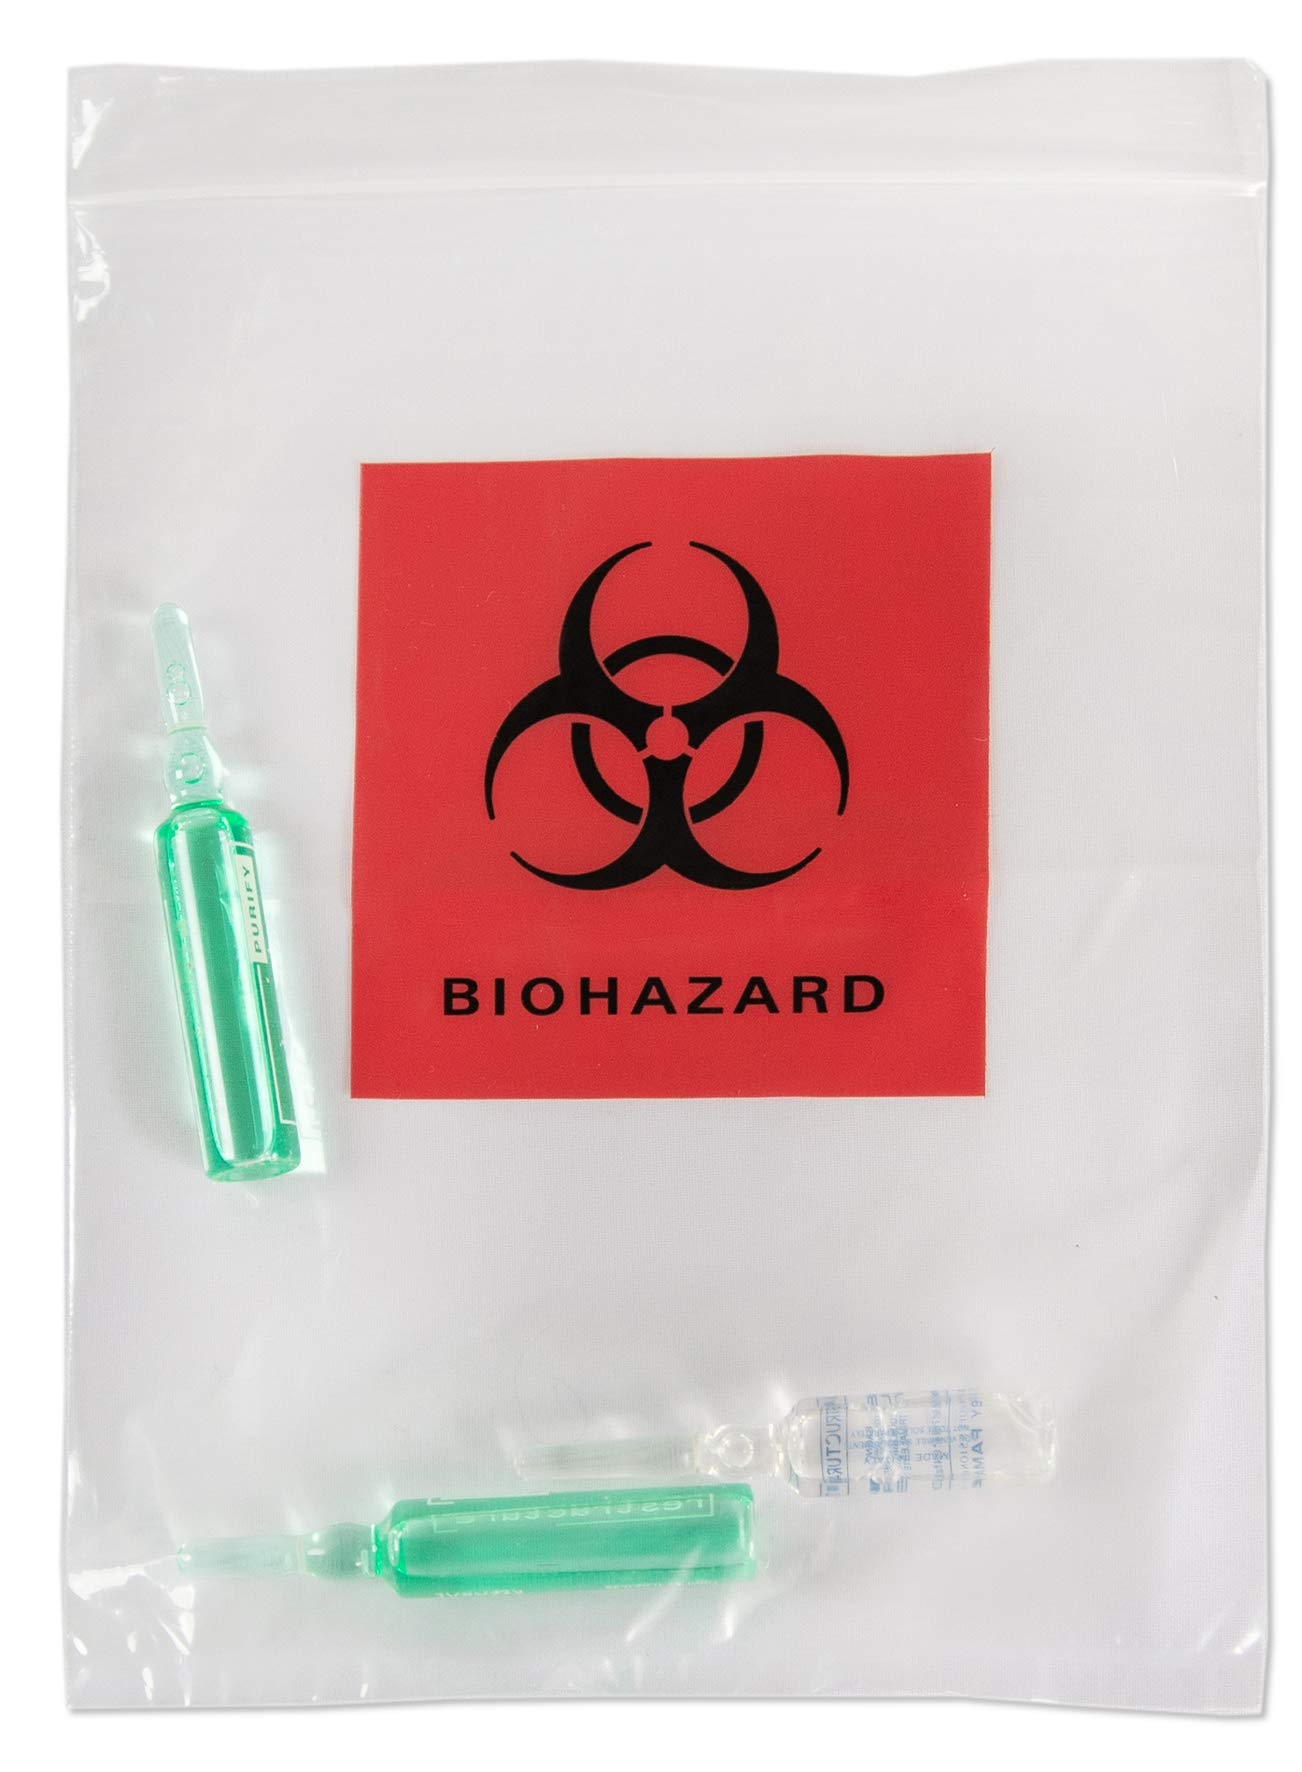 APQ Pack of 100 Biohazard Specimen Bags, Red and Black 6 x 9. Zipper Lockig Clear Bags 6x9. Thickness 2 mil. Printed Transport Bags 3 Wall for Packaging Medical Specimens. Attached Document Pouch. by APQ Supply